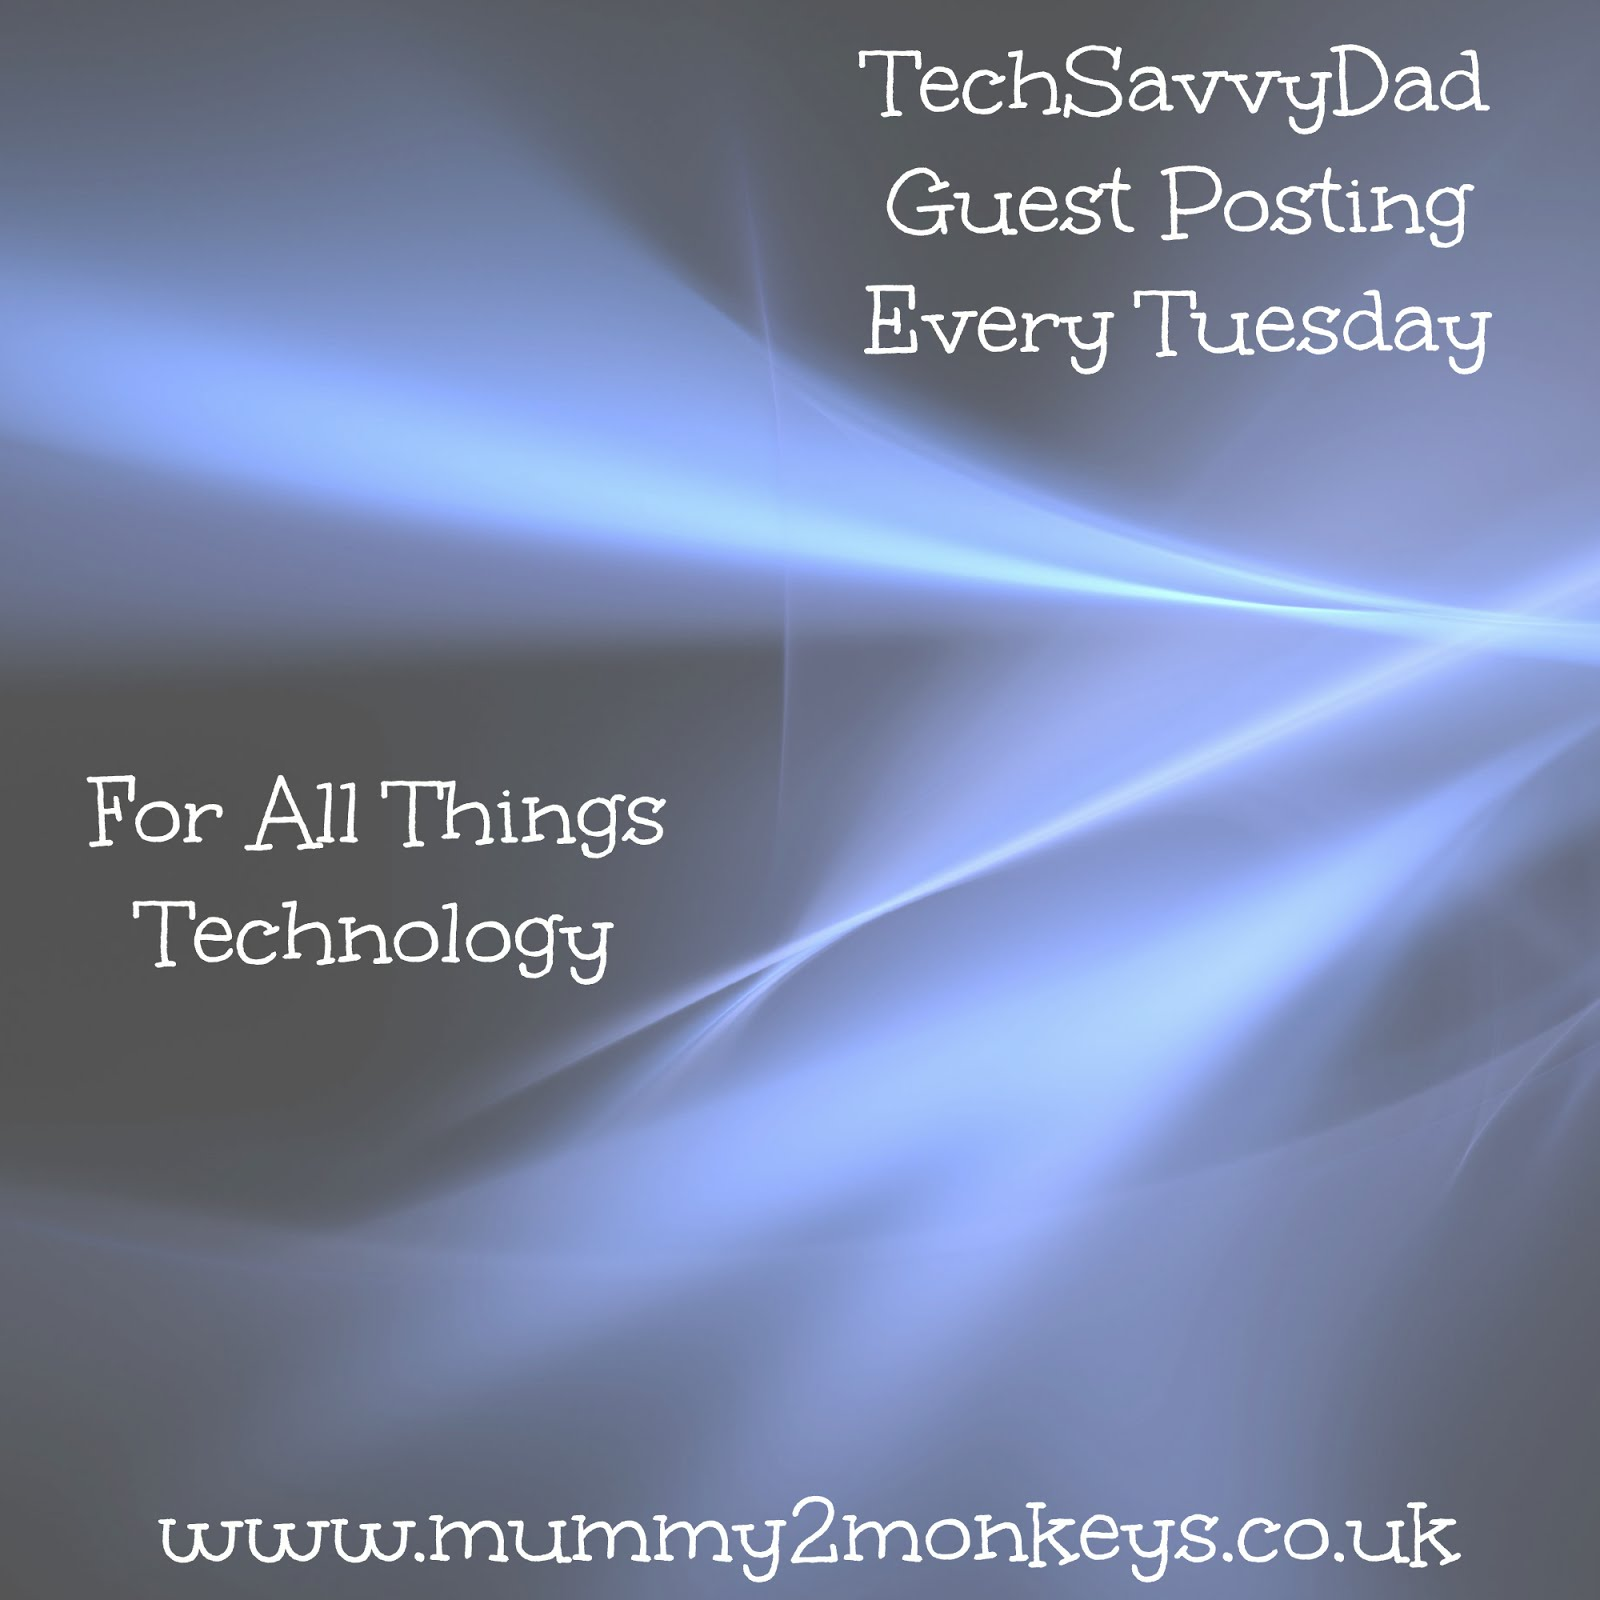 TechSavvyDad Tuesday